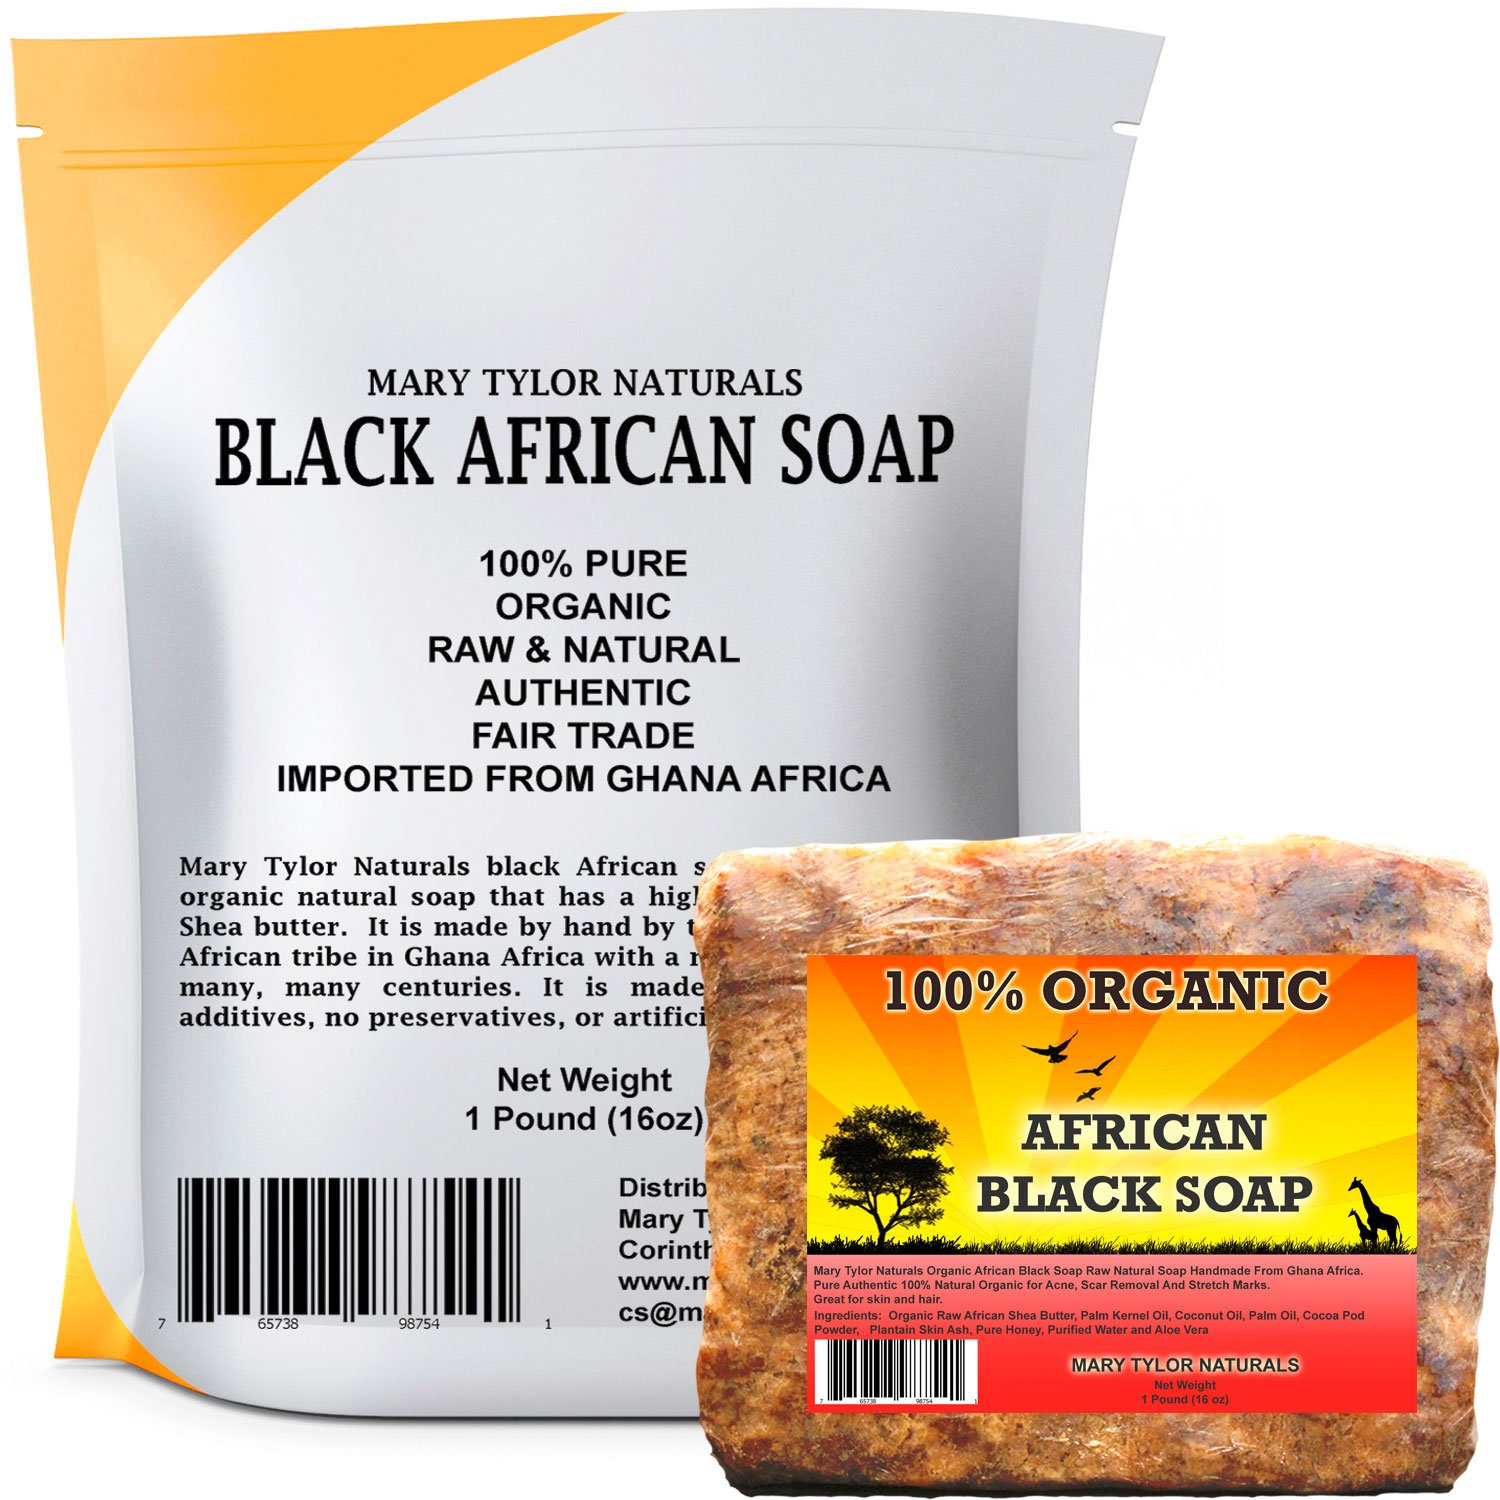 Organic African Black Soap 1 lb by Mary Tylor Naturals, Raw, Natural soap for Acne, Eczema, Psoriasis, Scar Removal Face And Body Wash Authentic Handmade Beauty Bar Imported From Ghana Africa